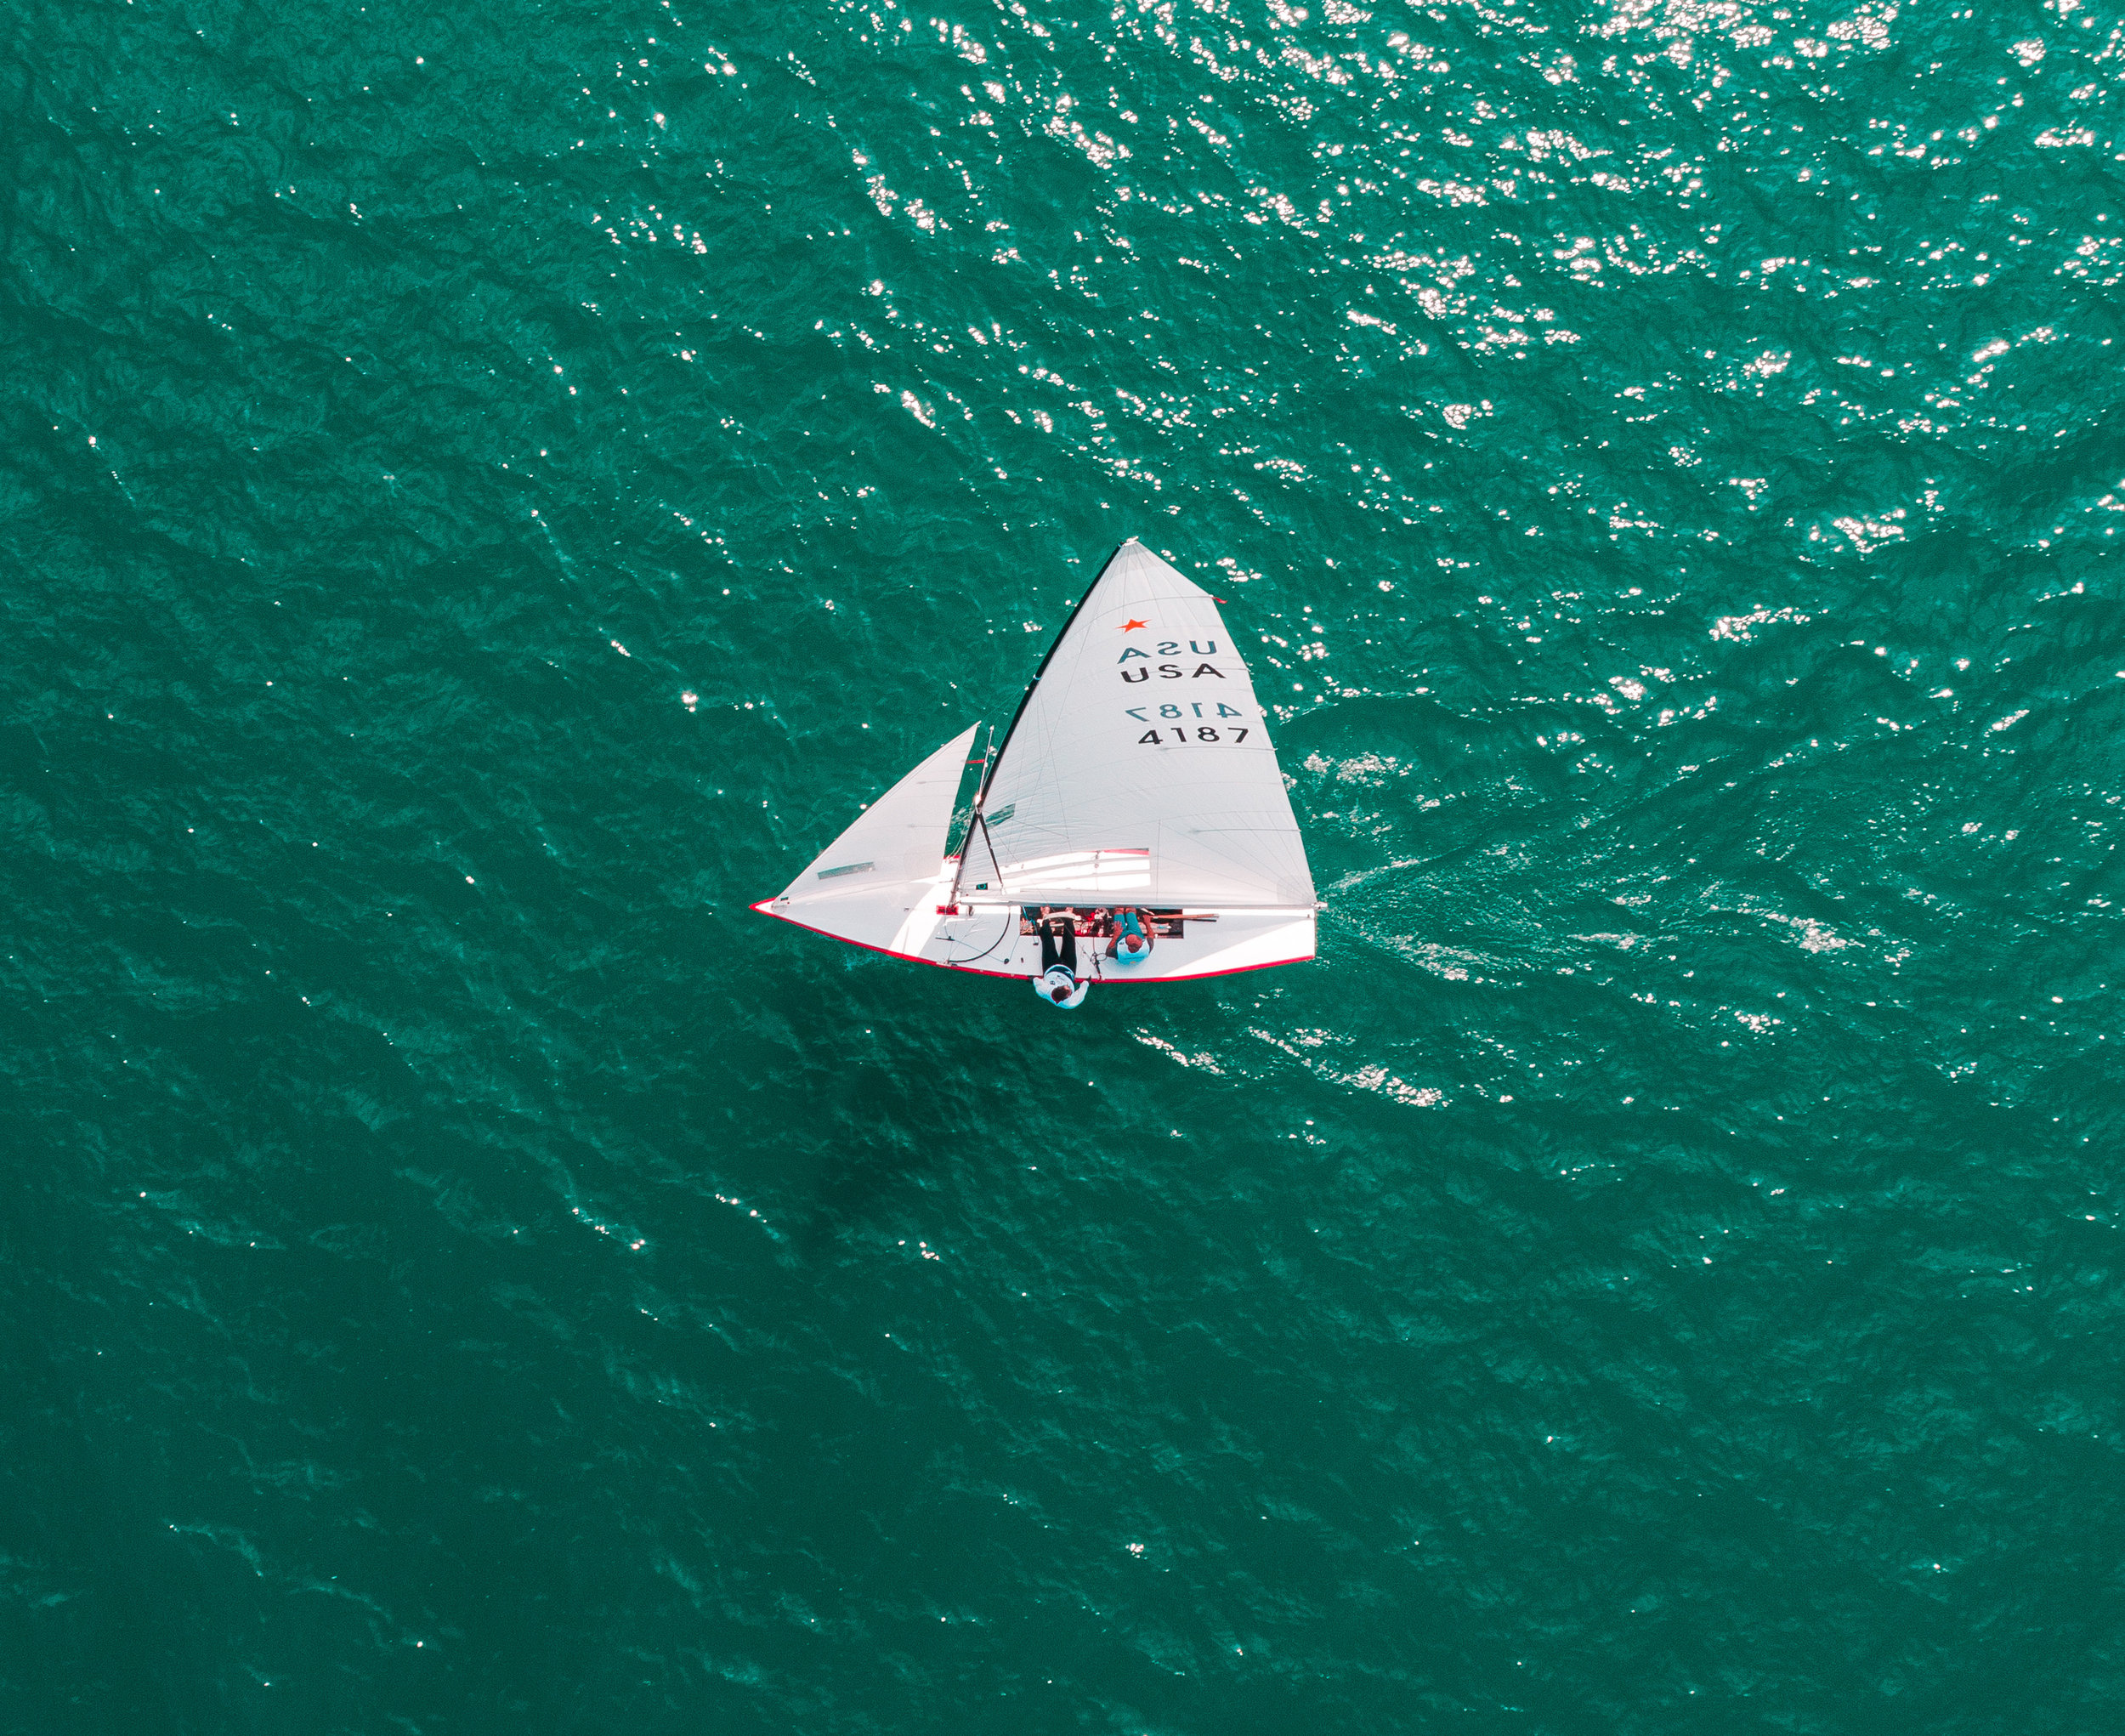 Vintage Gold Cup Drone-8 rotate.jpg